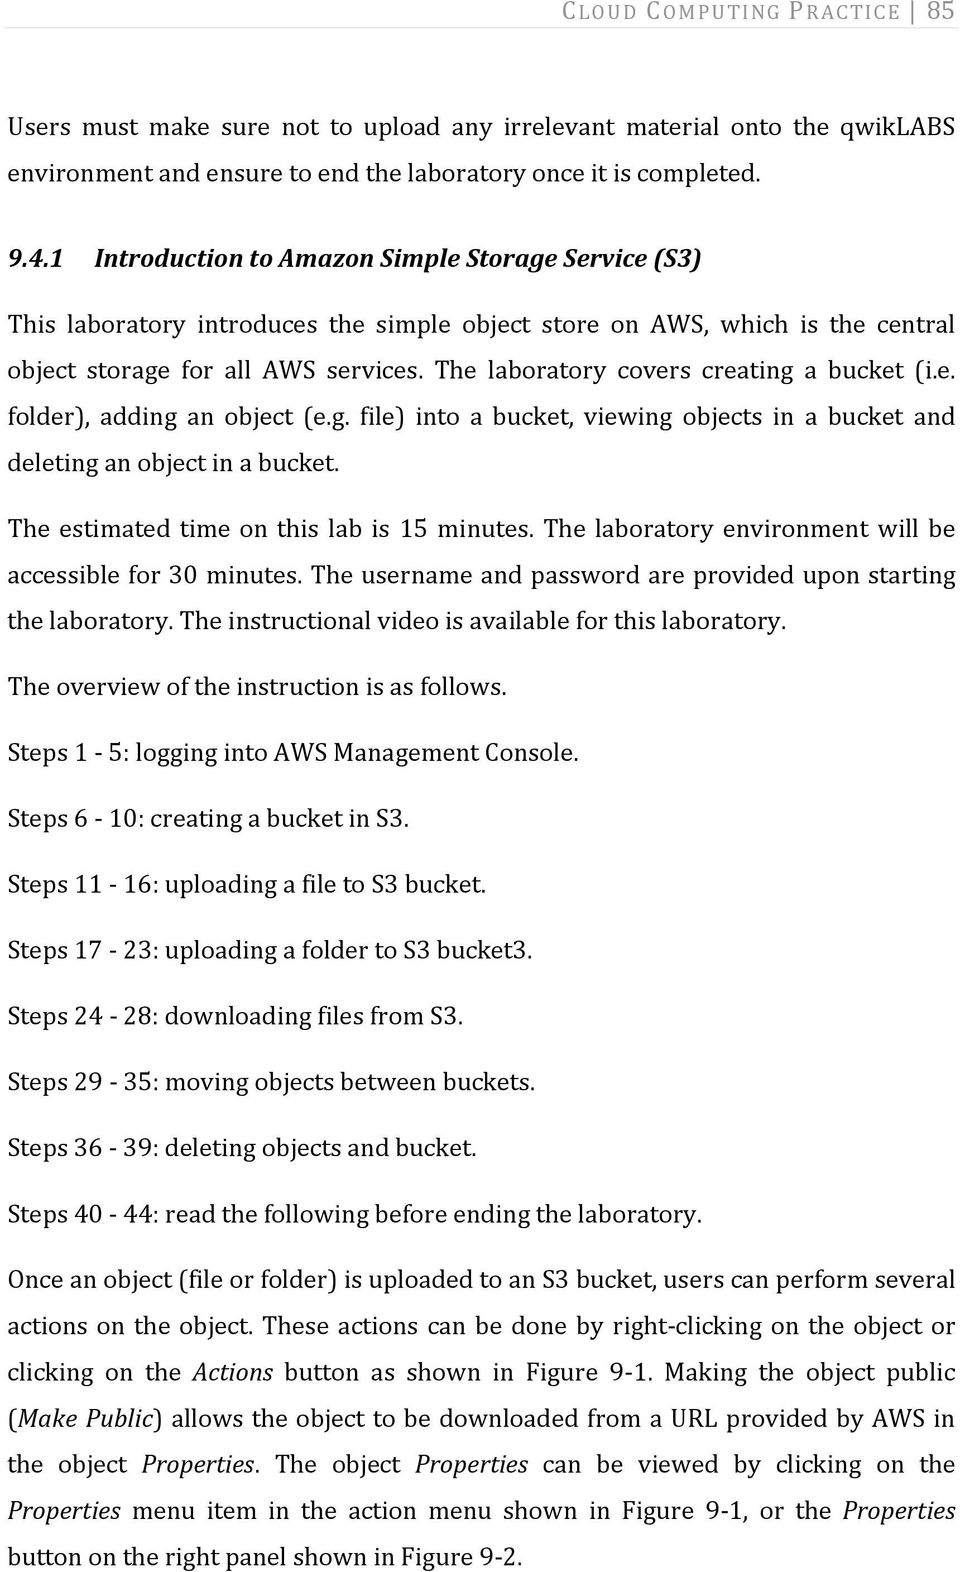 The laboratory covers creating a bucket (i.e. folder), adding an object (e.g. file) into a bucket, viewing objects in a bucket and deleting an object in a bucket.